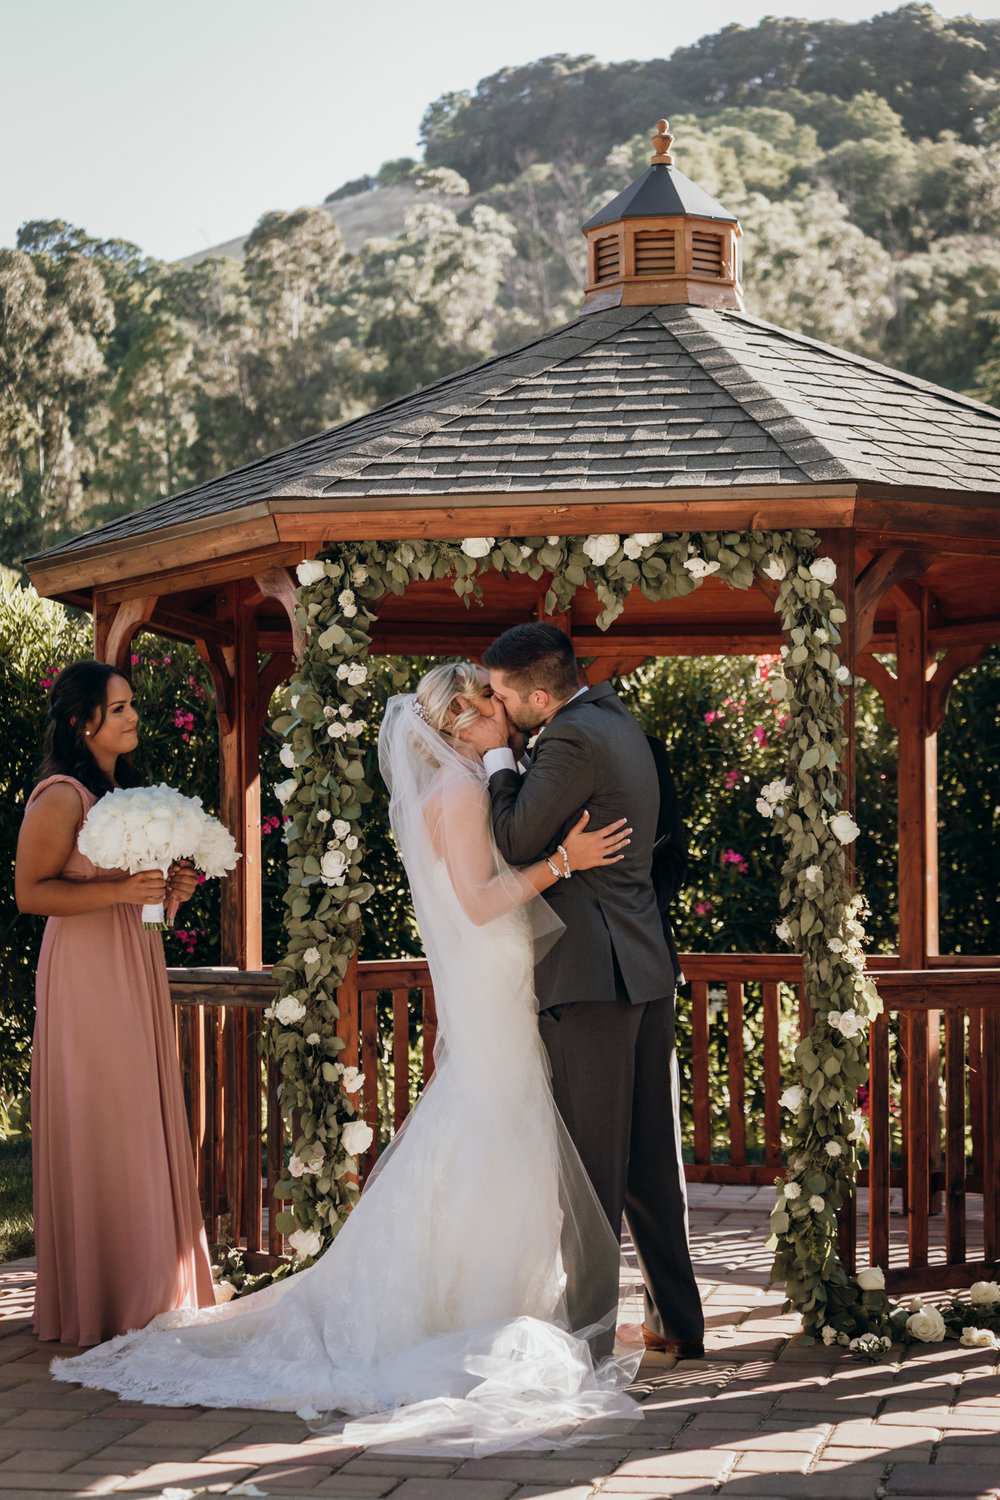 First Kiss Elliston Vineyard Sunol.jpg